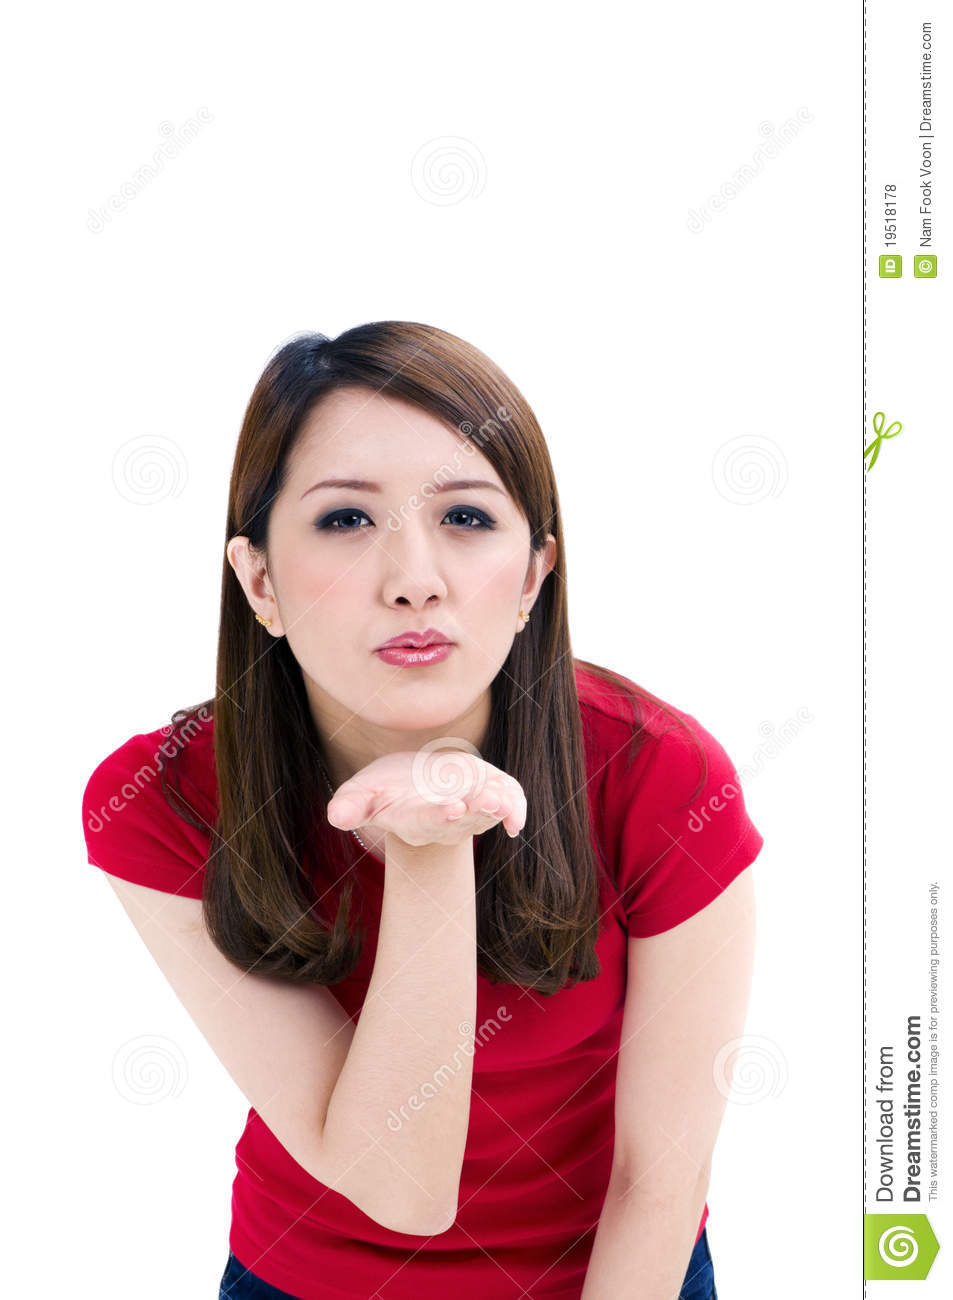 Attractive Young Woman Blowing A Kiss Stock Photo - Image ...